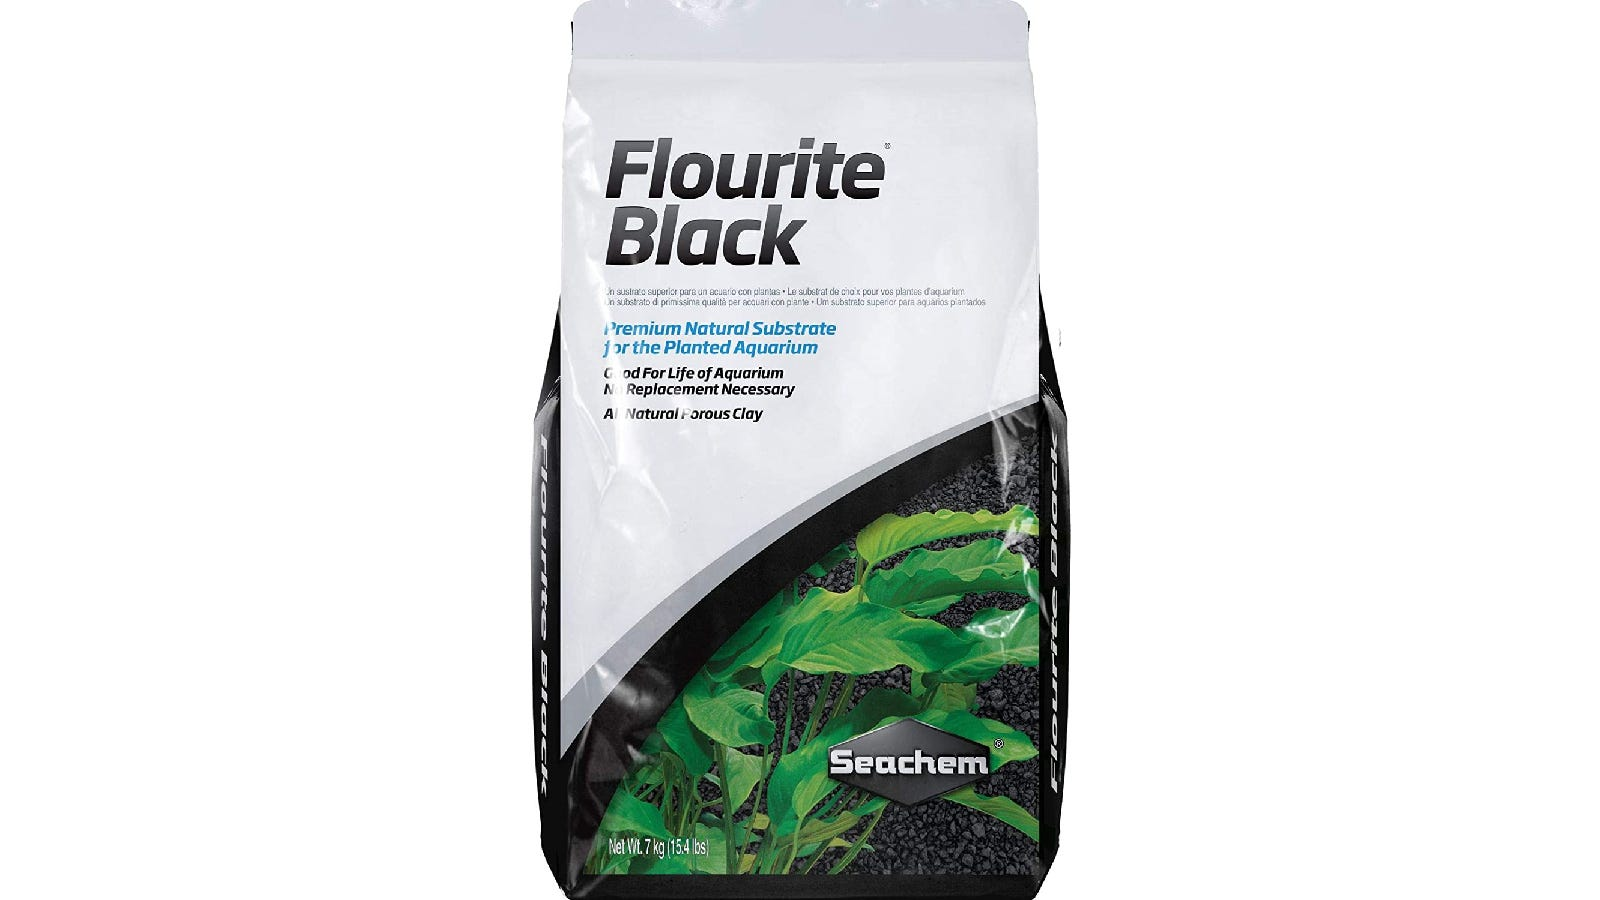 white plastic bag with black sand and green plants on the lower half of the cover